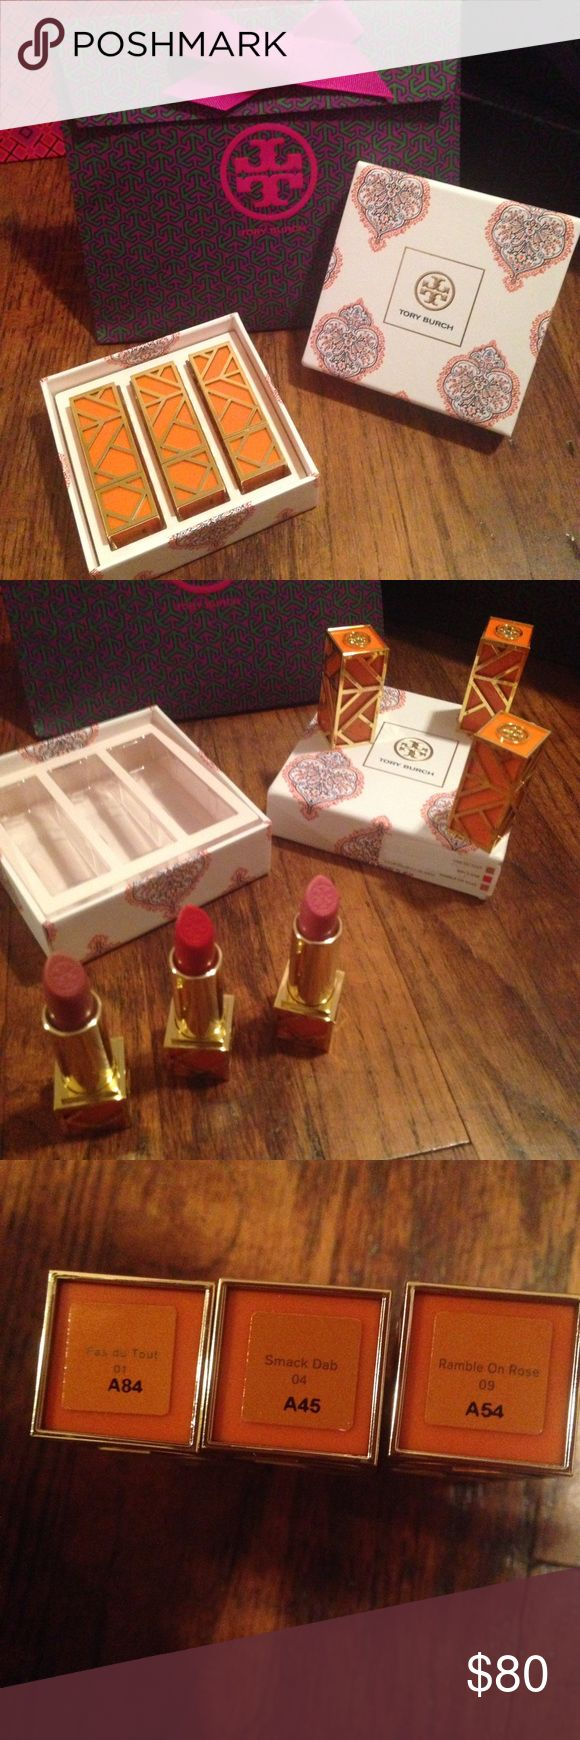 Tory Burch lipstick gift set Brand new and never used. I do not plan on breaking up set unless red one goes first. Great deal! Over $100 value! With cute little GIFTBOX and gift bag . Tory Burch Makeup Lipstick